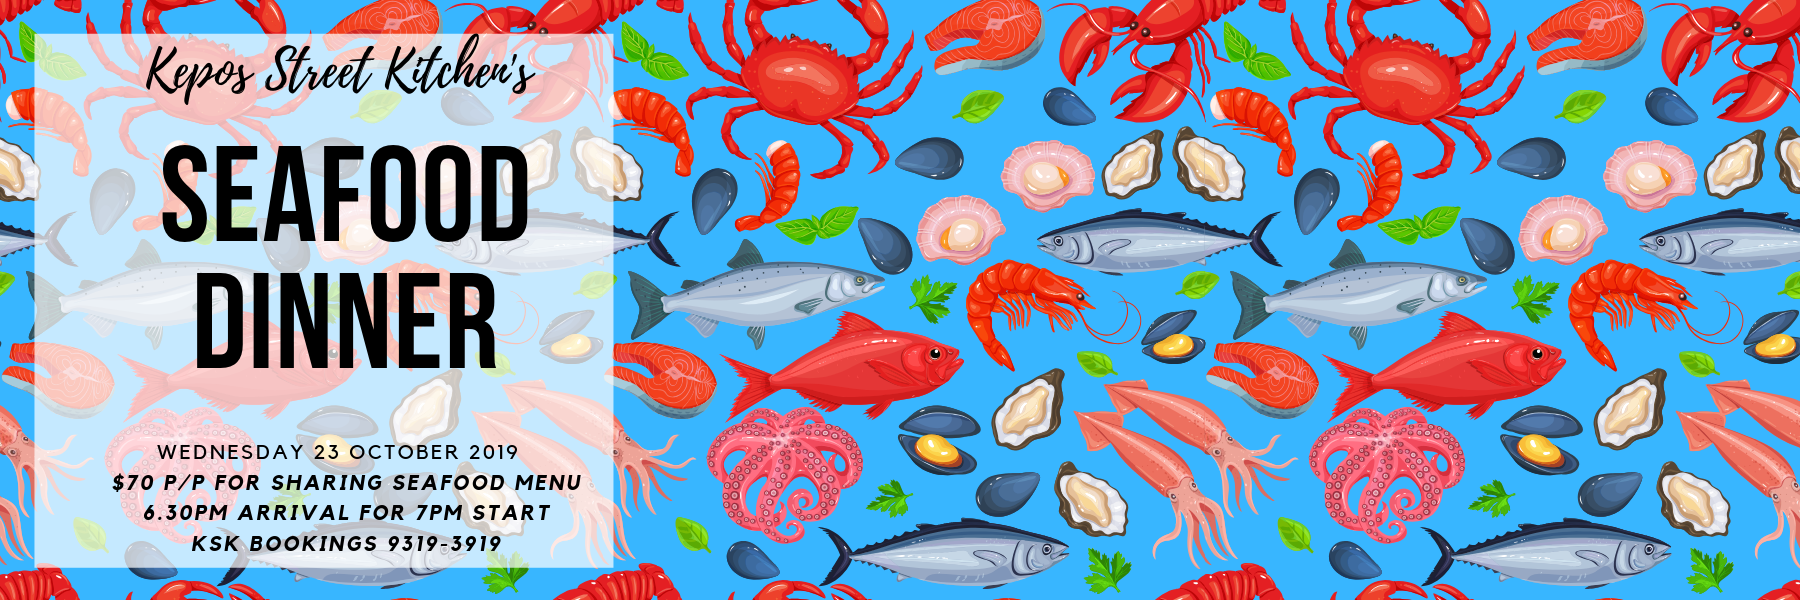 FOOTER - seafood dinner.png